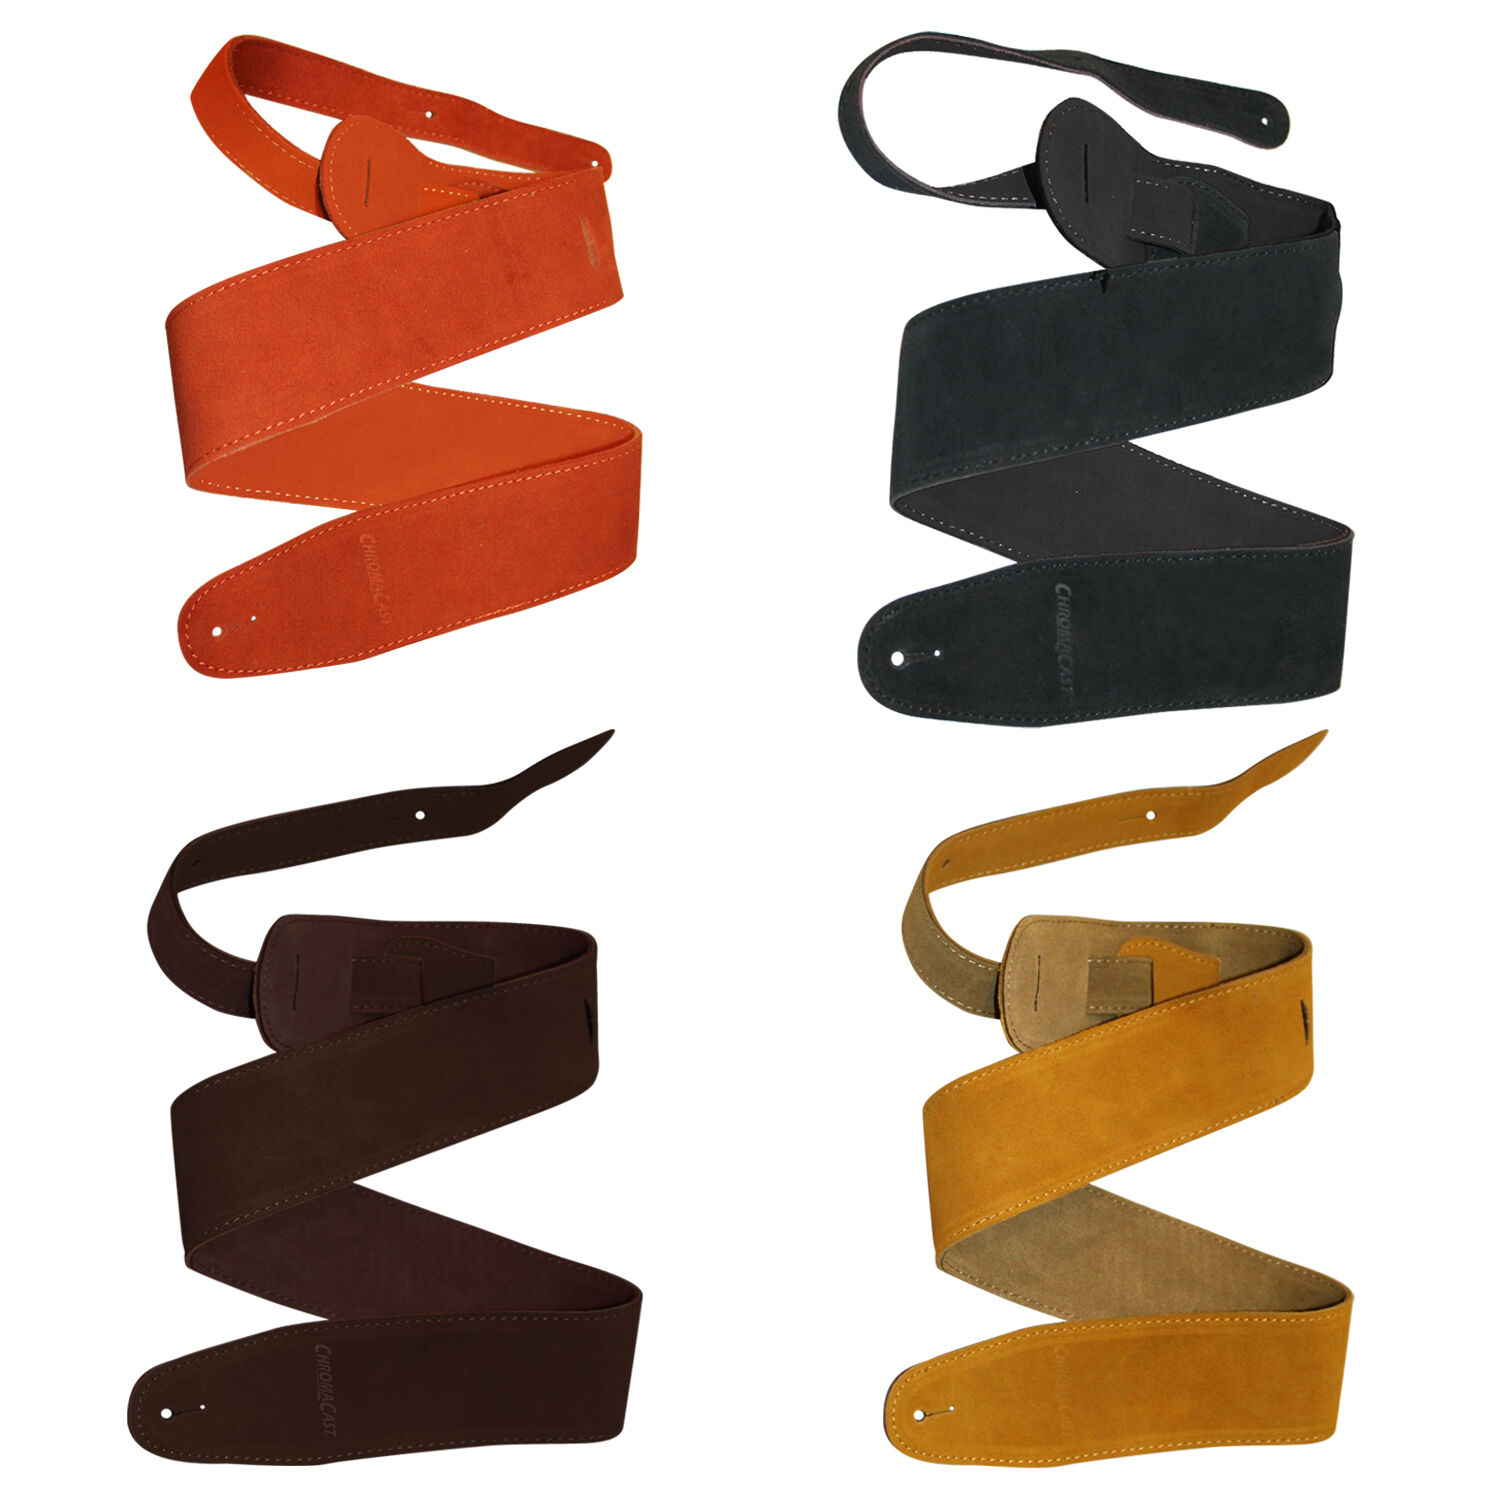 Guitar Strap Suede Leather for Acoustic, Electric, Bass Guit